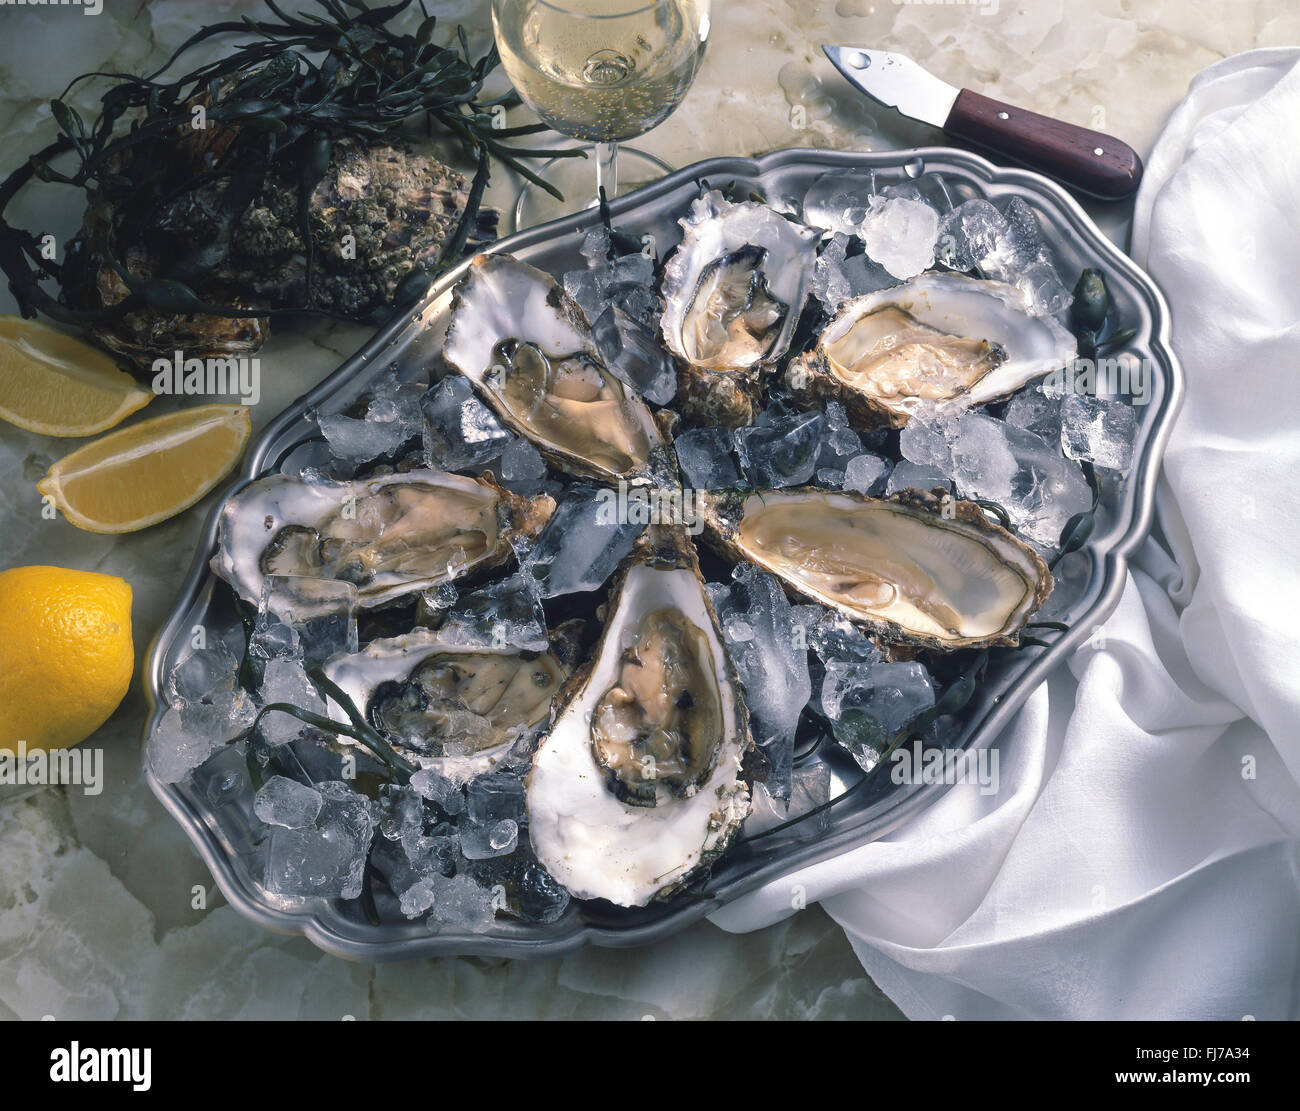 Tray of fresh oysters in shells, Whitstable, Kent, England, United Kingdom - Stock Image